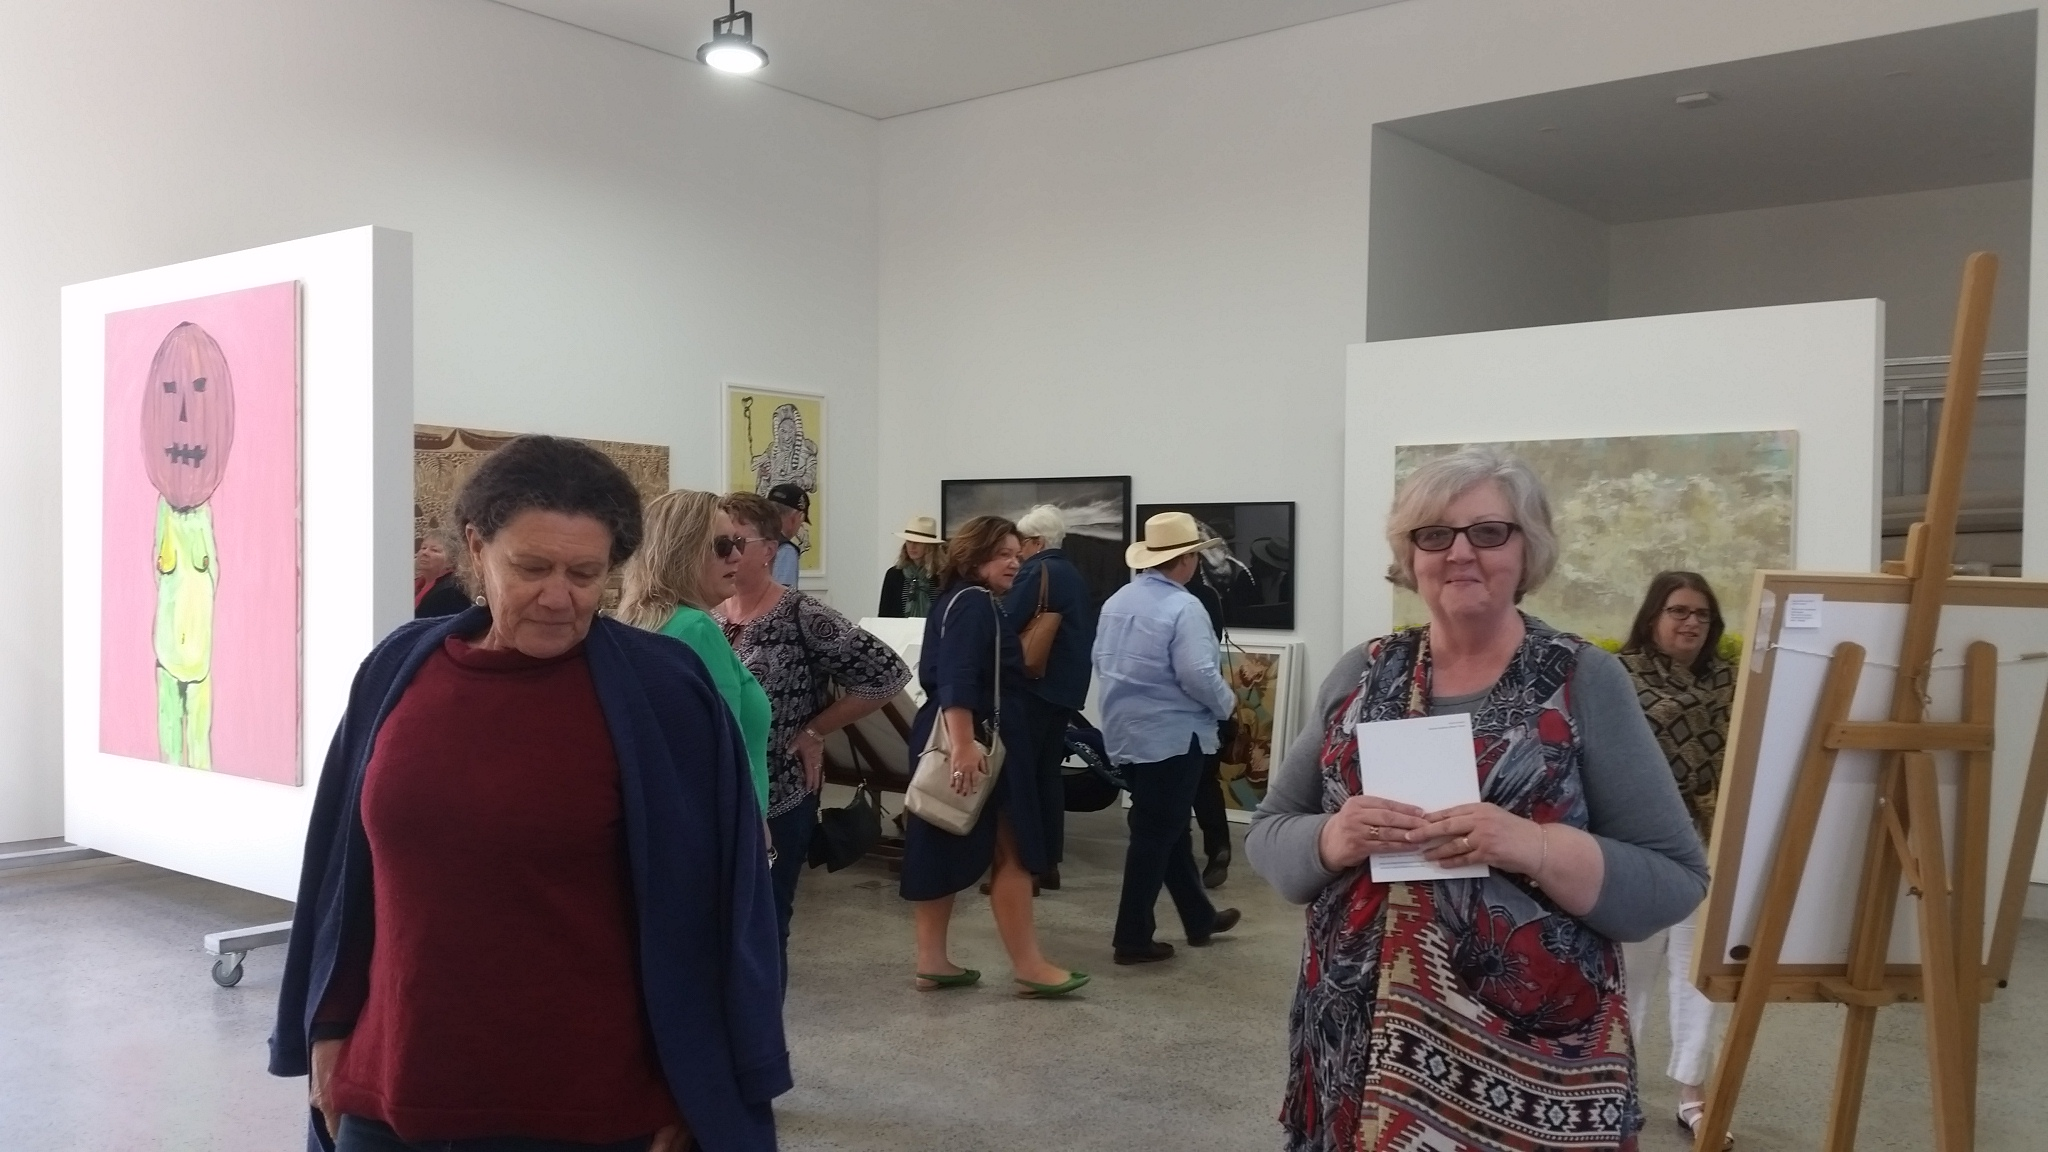 A couple of our guests enjoying a walk around the gallery